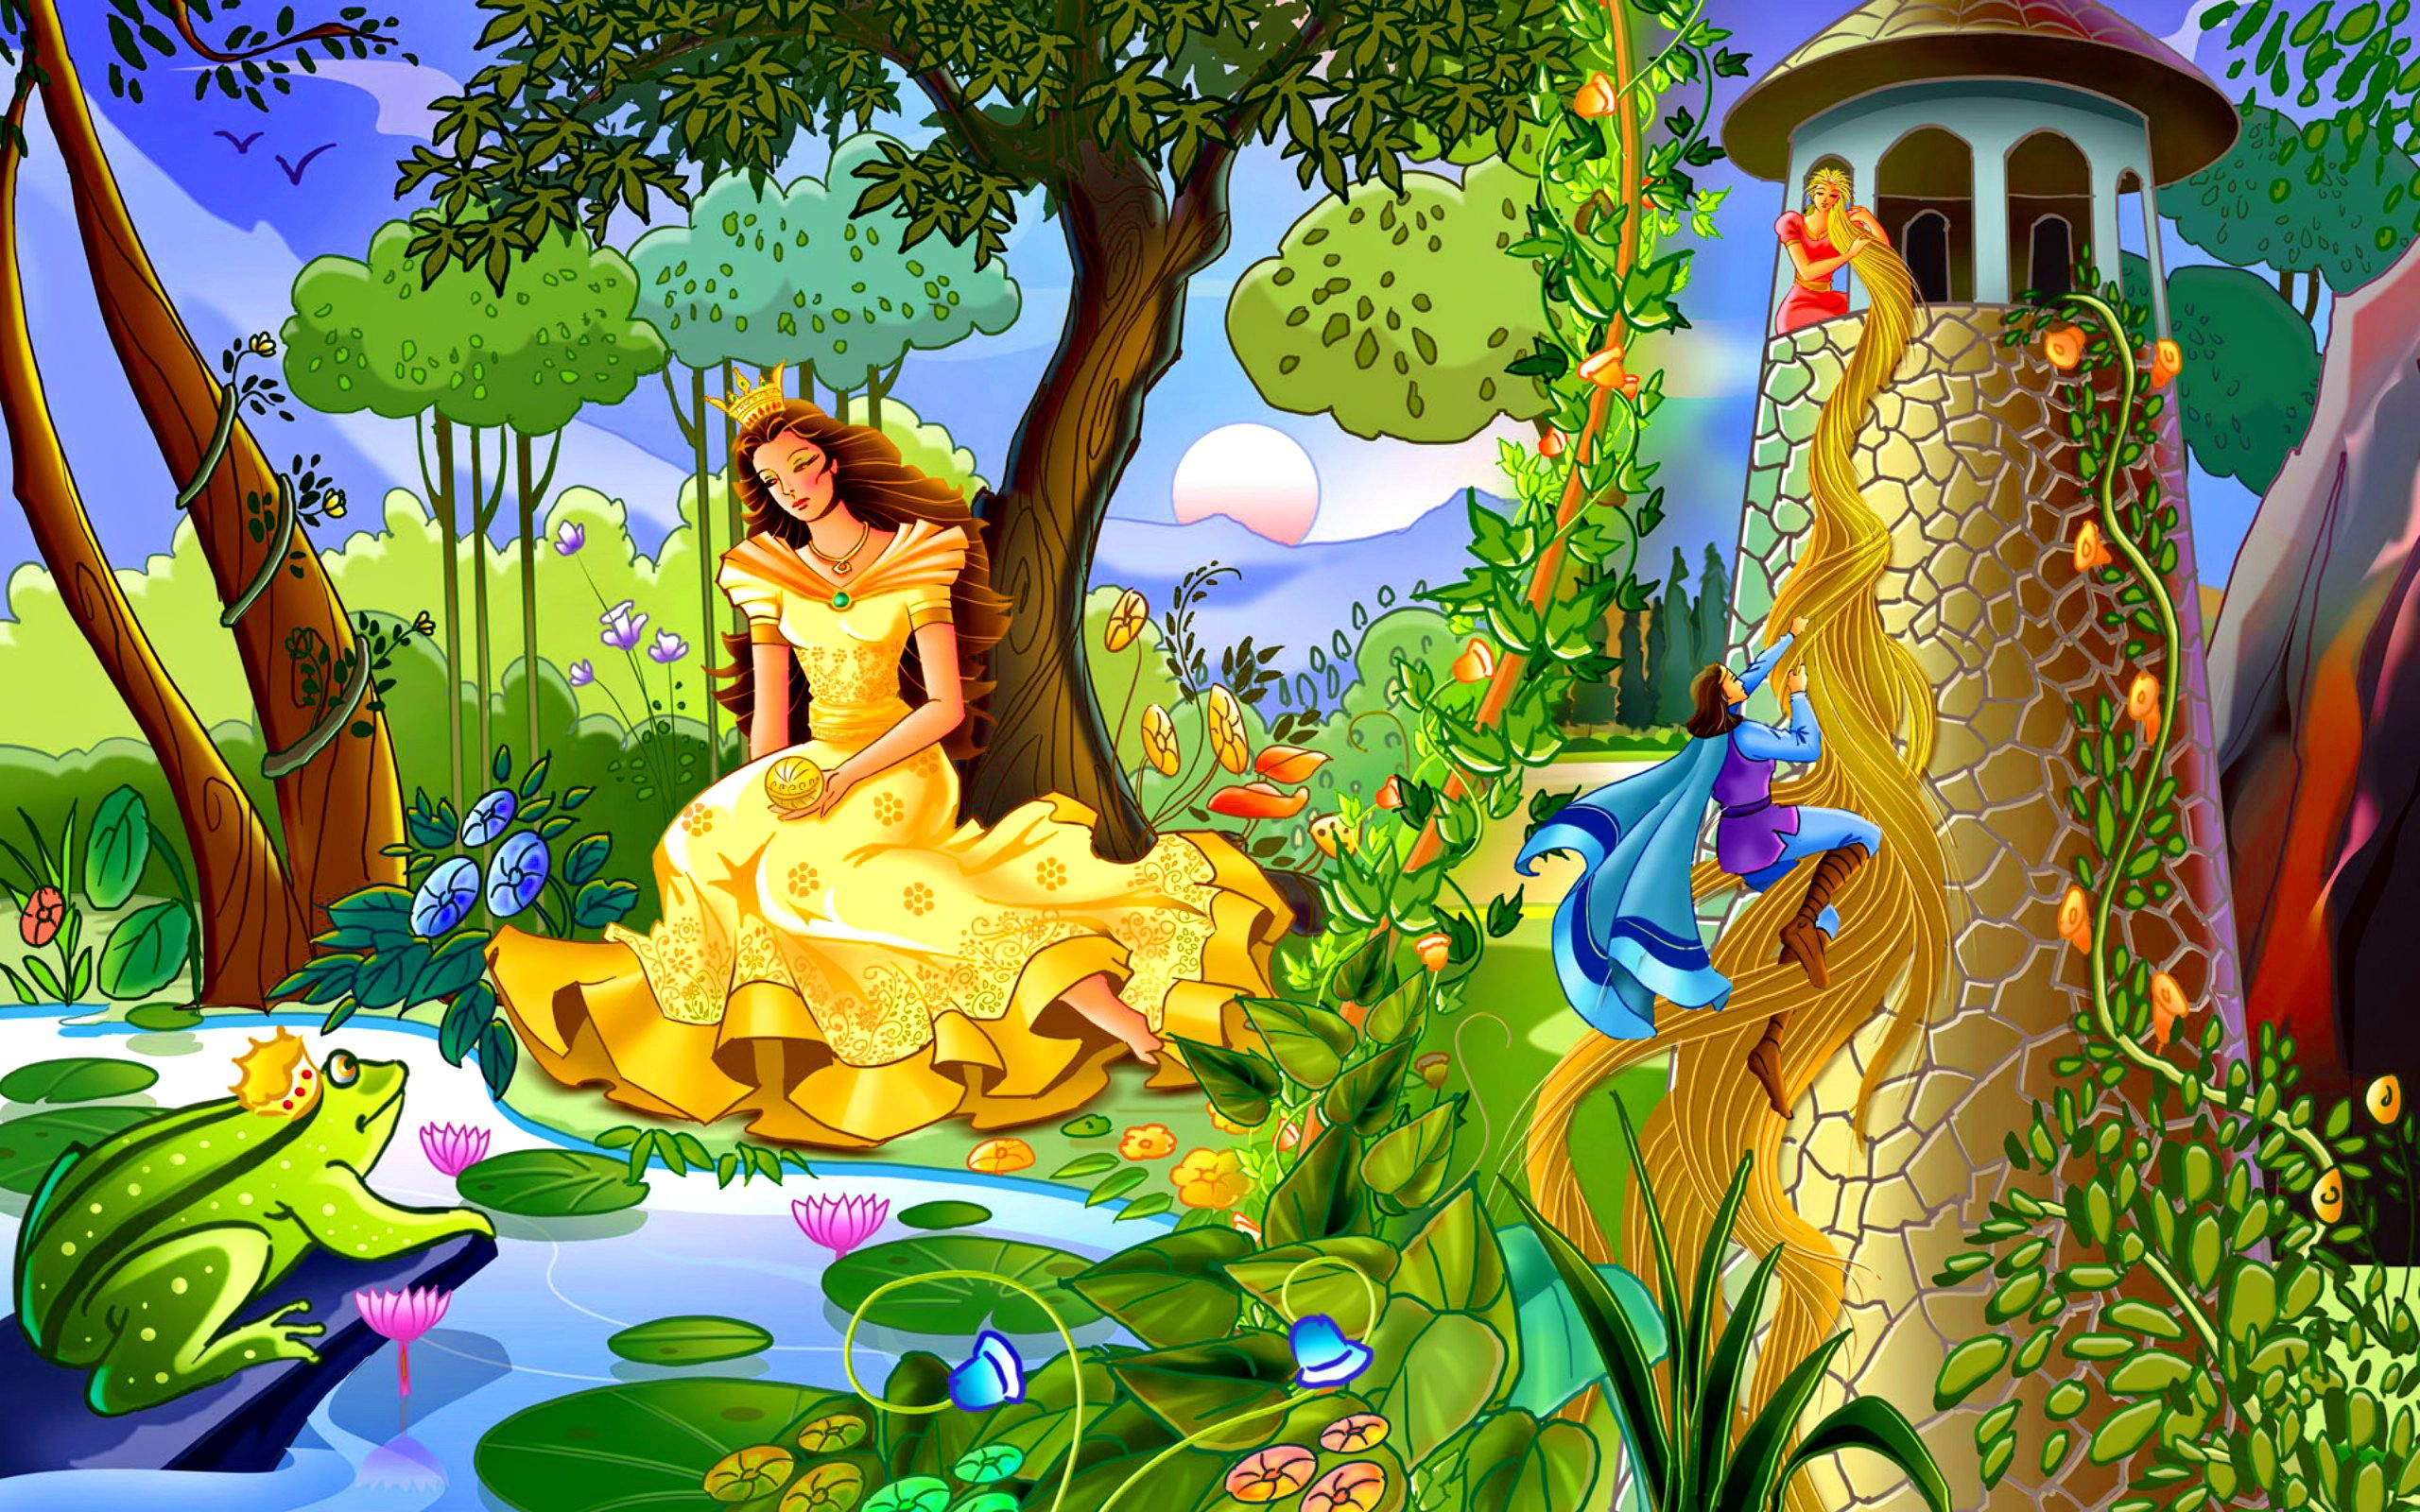 Colorful Fairytale Wallpapers Hd Free 324520 Cartoon Wallpaper World Wallpaper Cartoon Painting